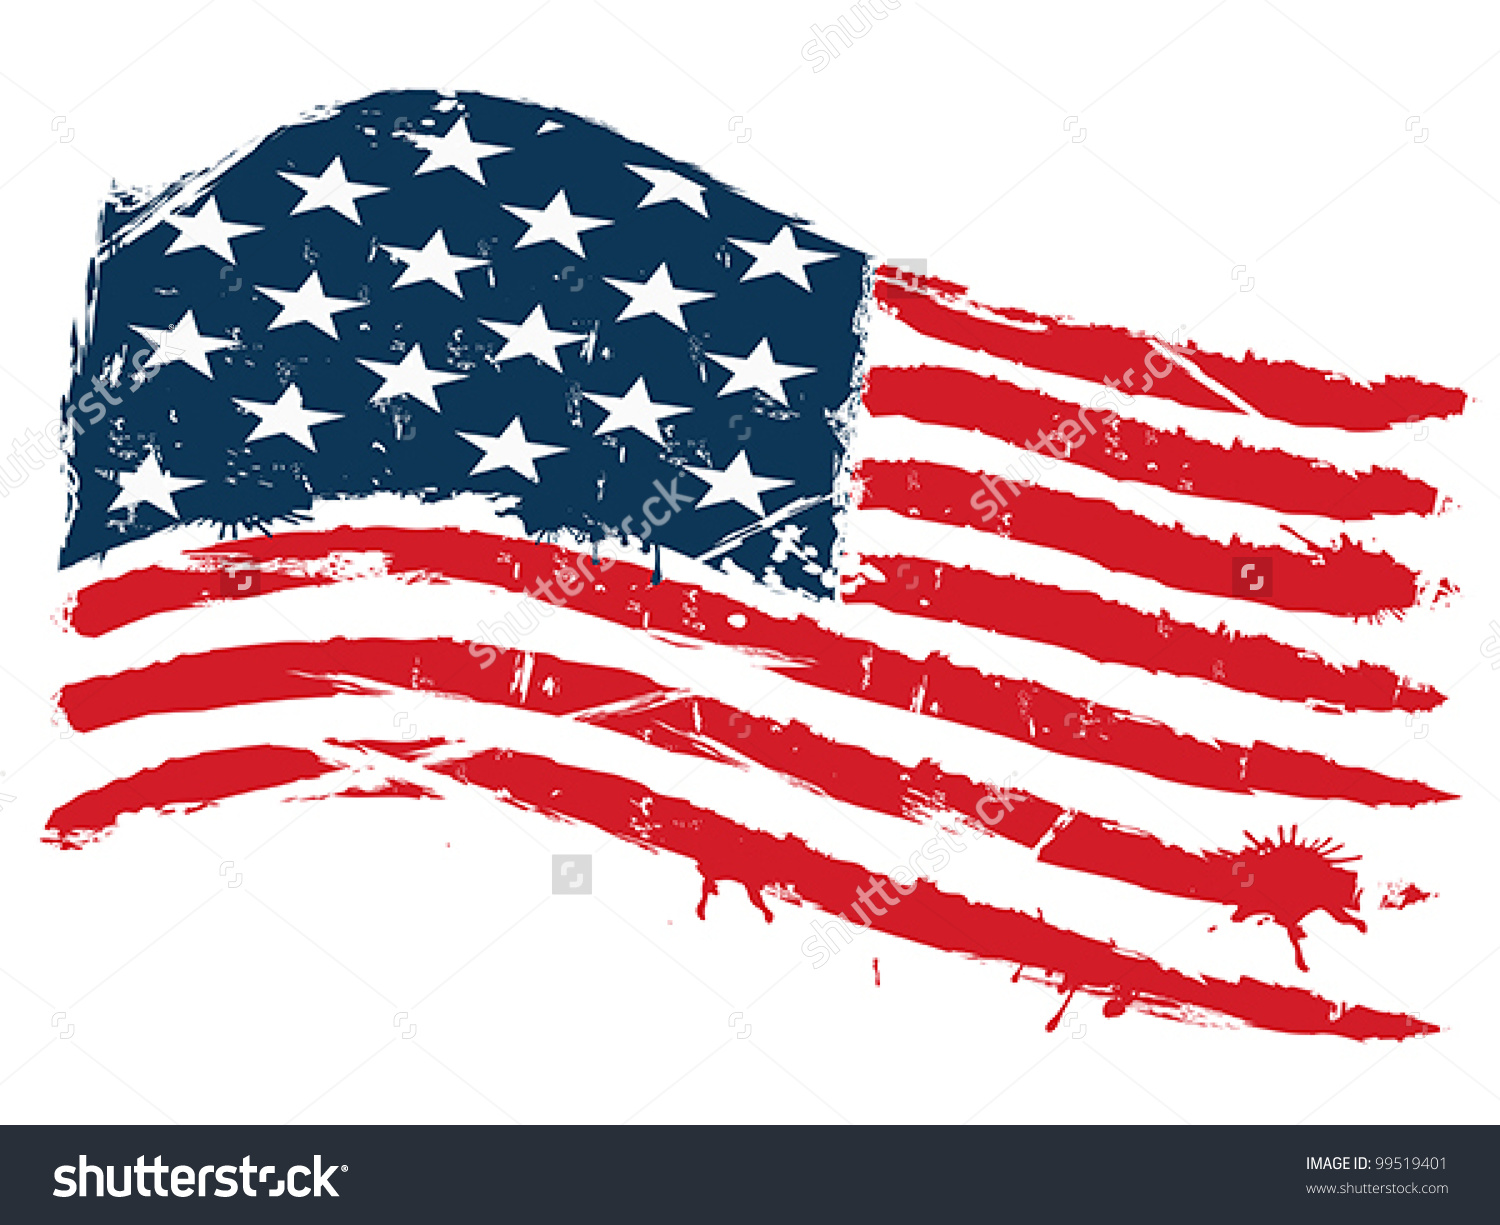 1500x1225 Grunge American Flag Vertical Free Clipart Collection